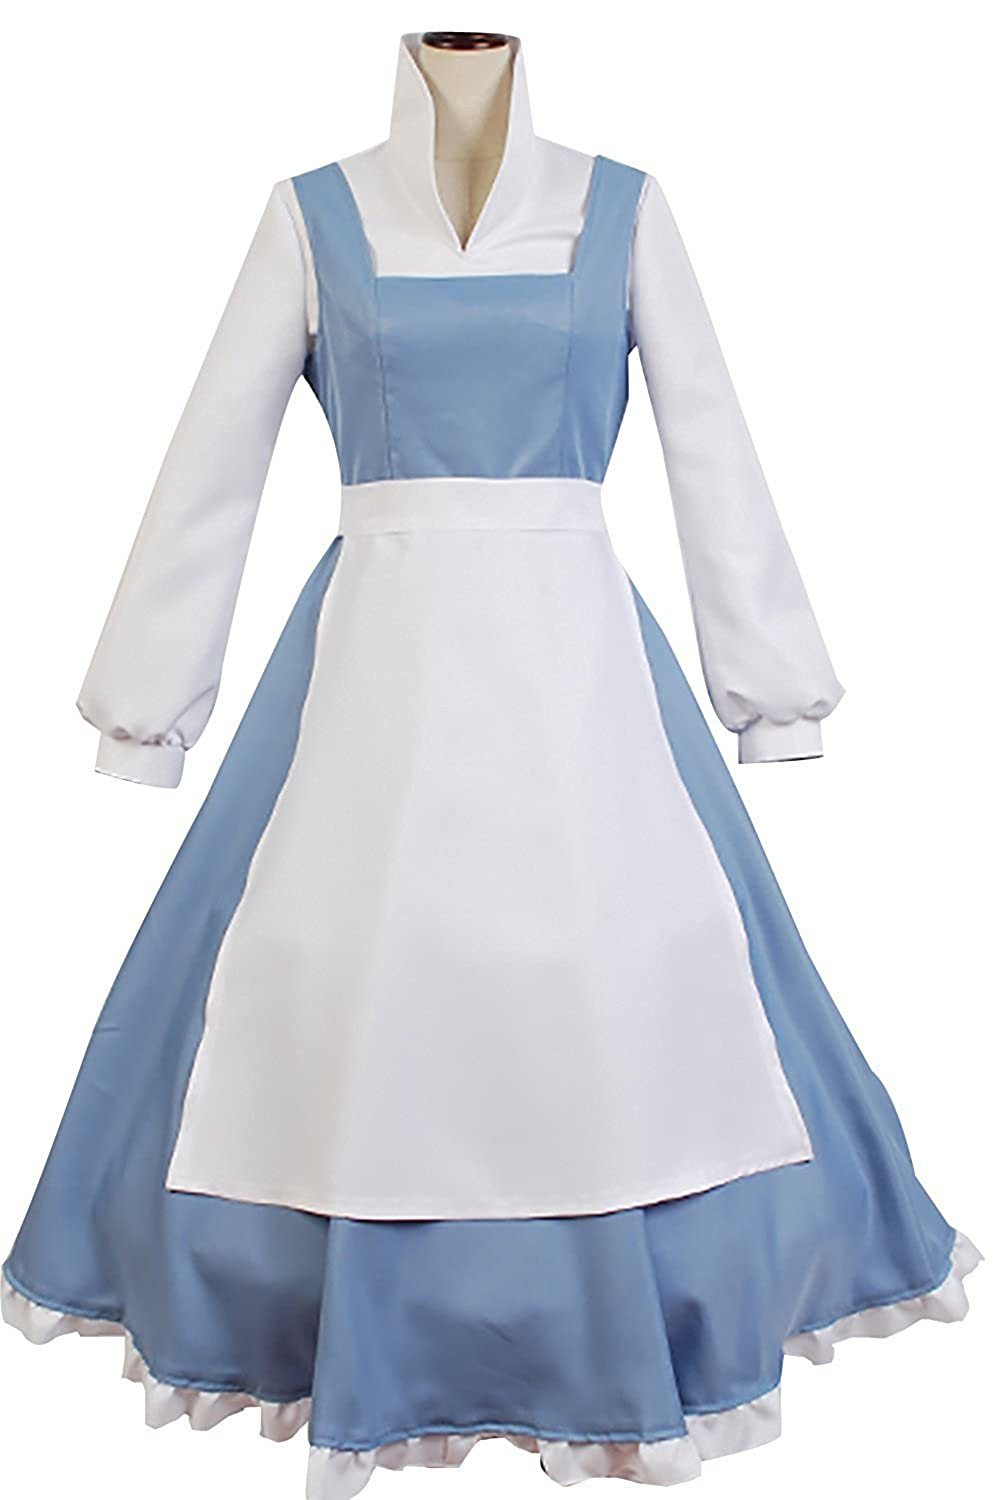 Amazon.com: Sidnor Beauty And The Beast Cosplay Costume Belle Dress ...